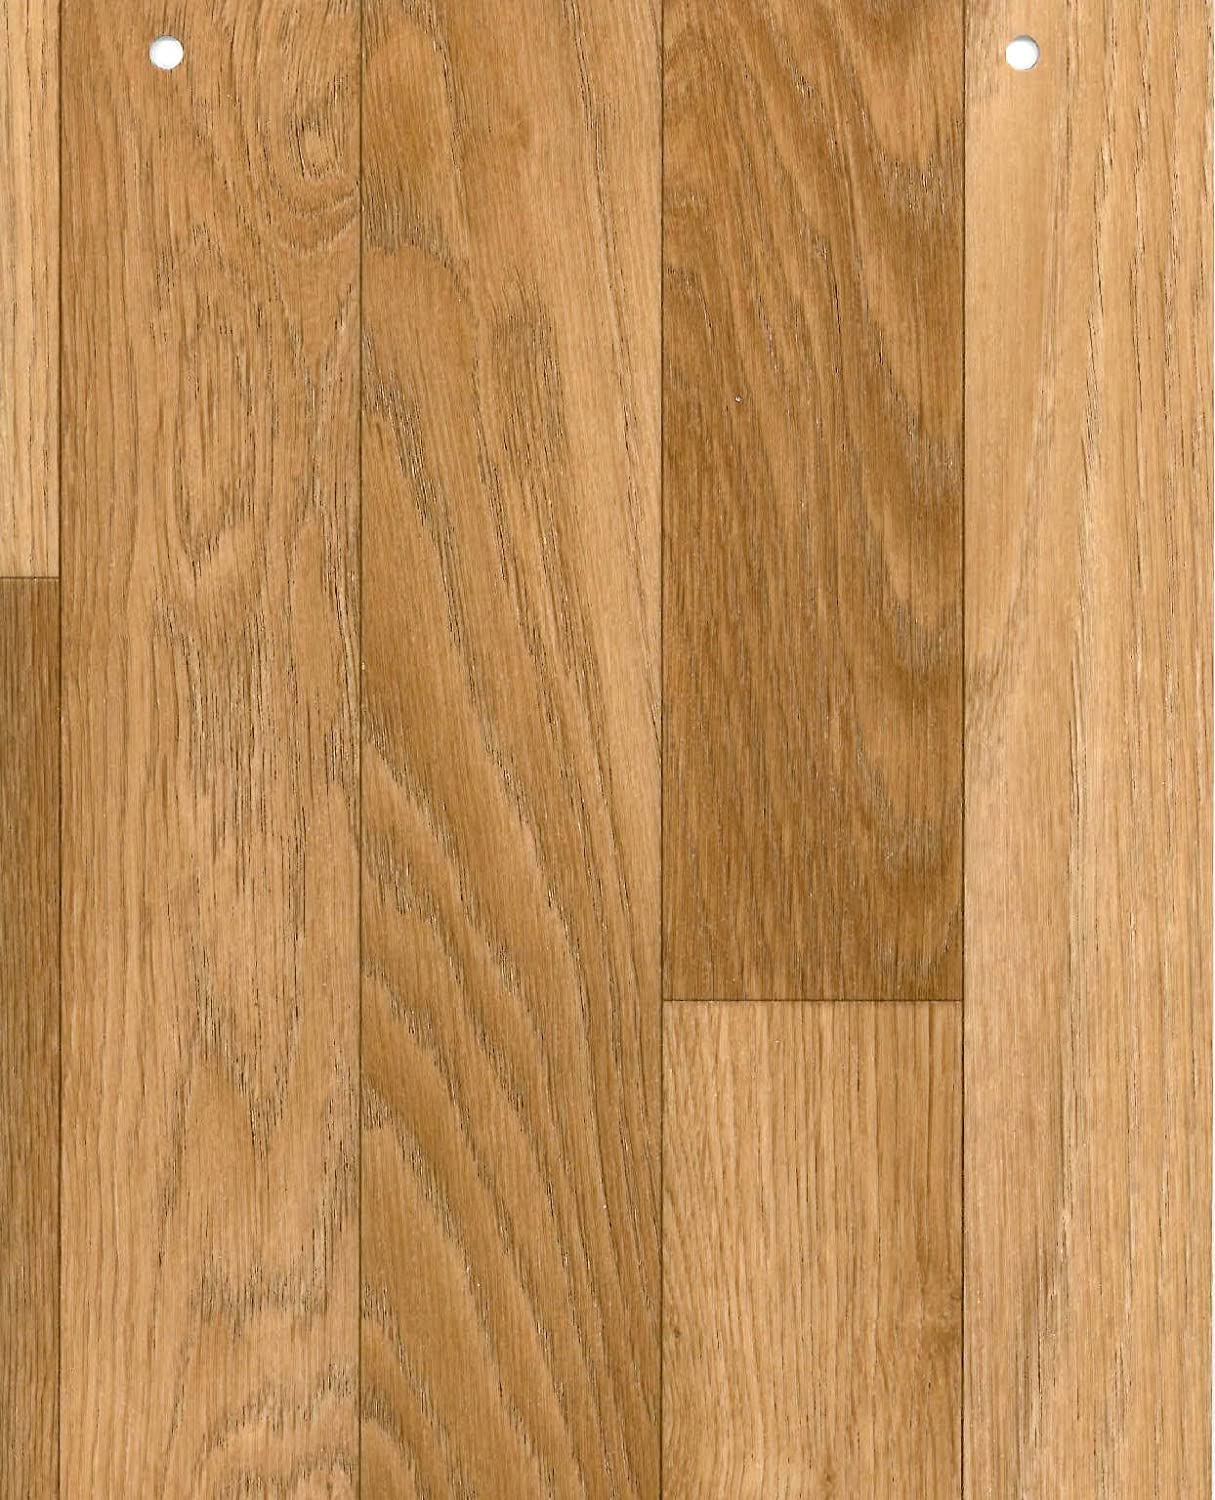 vinyl floor tiles oak effect floor matttroy